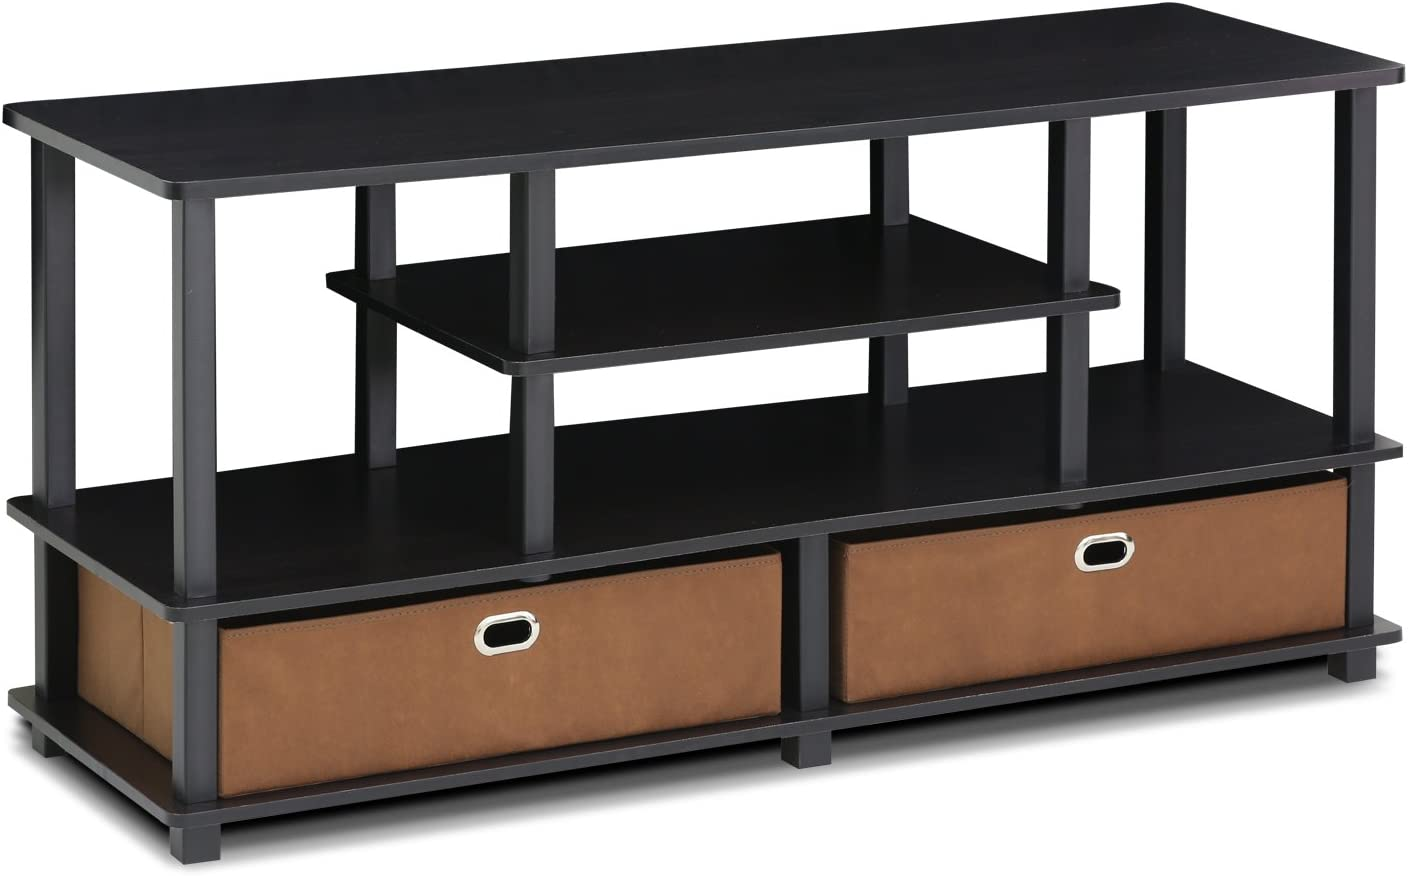 FURINNO JAYA TV Stand, Black: Furniture & Decor